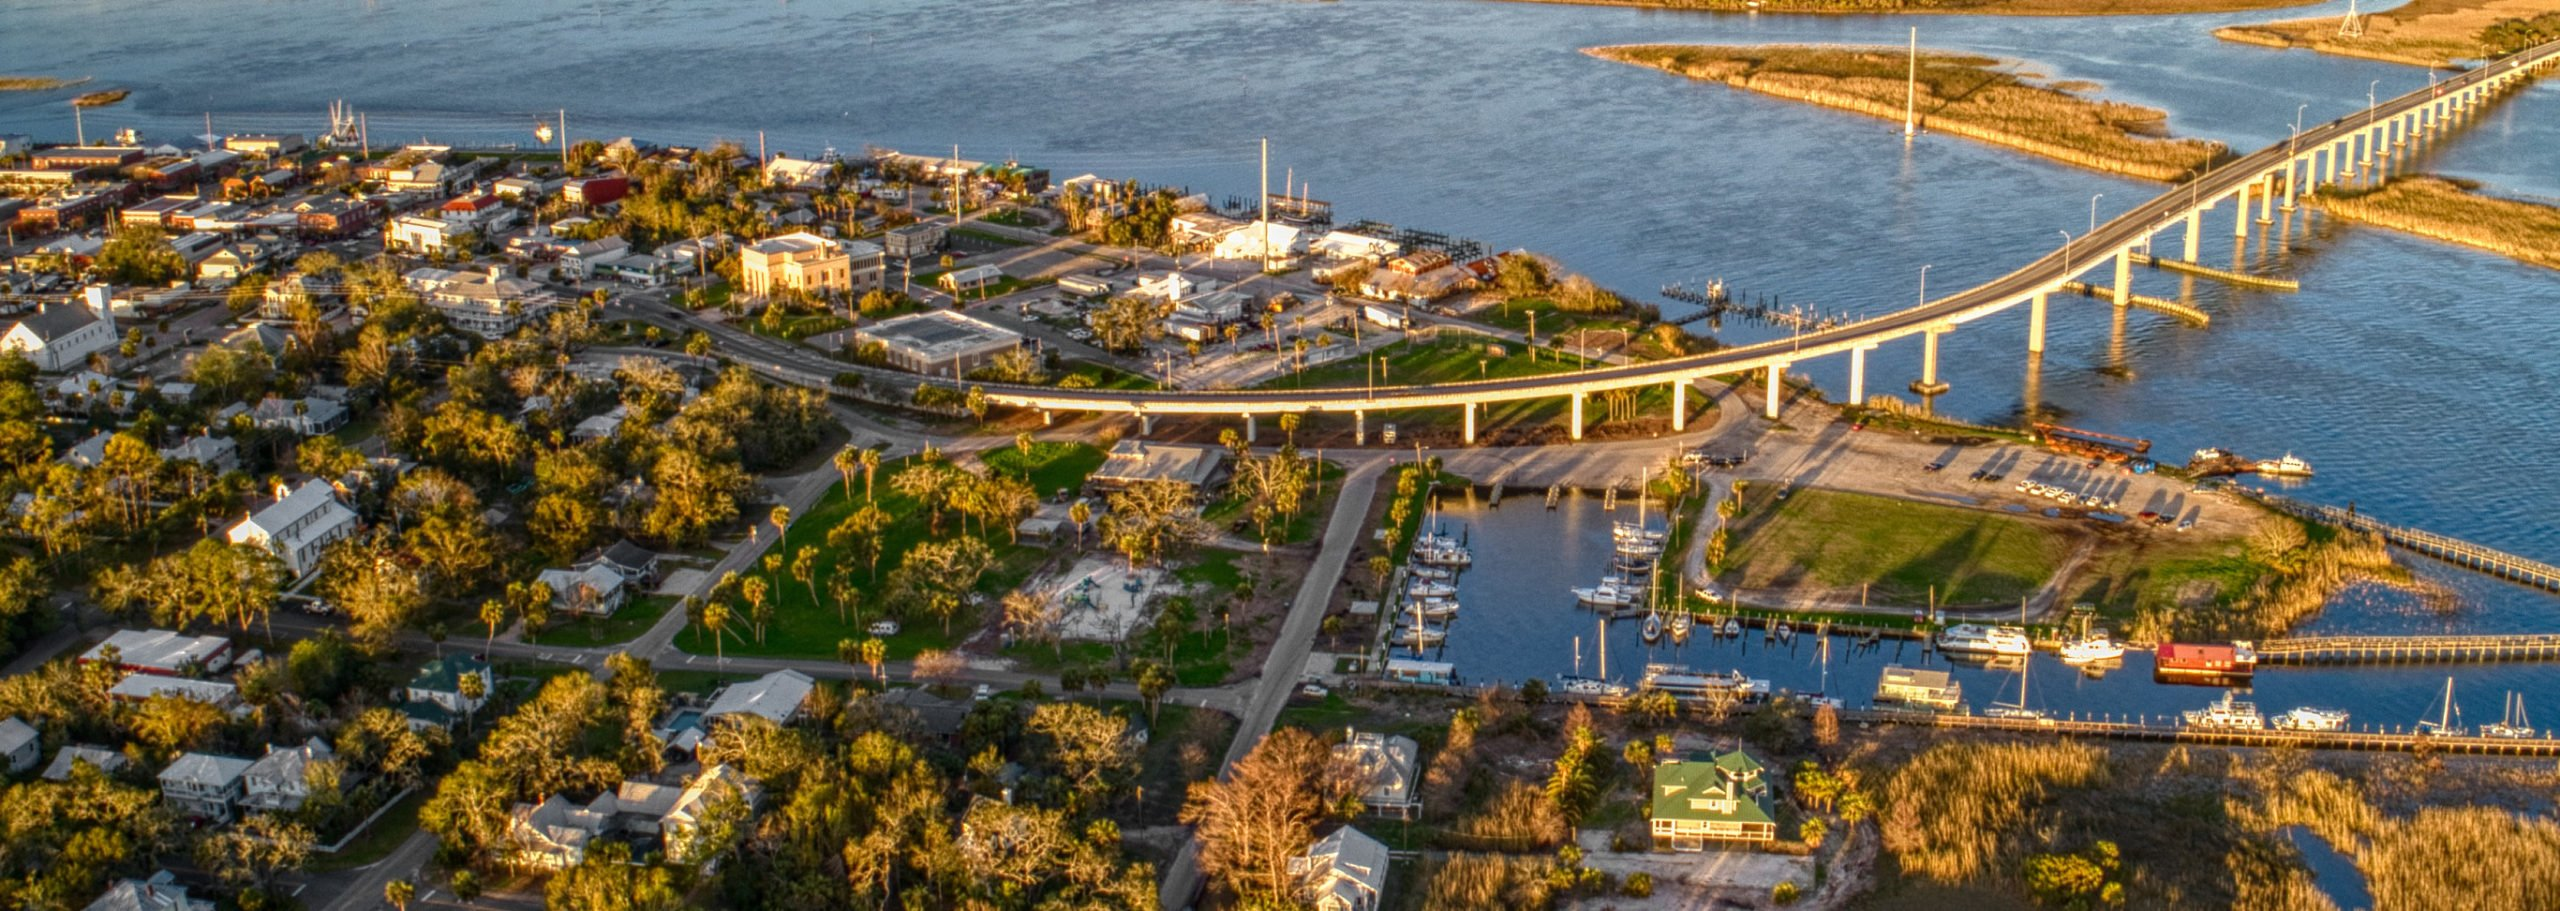 View of Homes and Land For Sale in Apalachicola, FL 32320